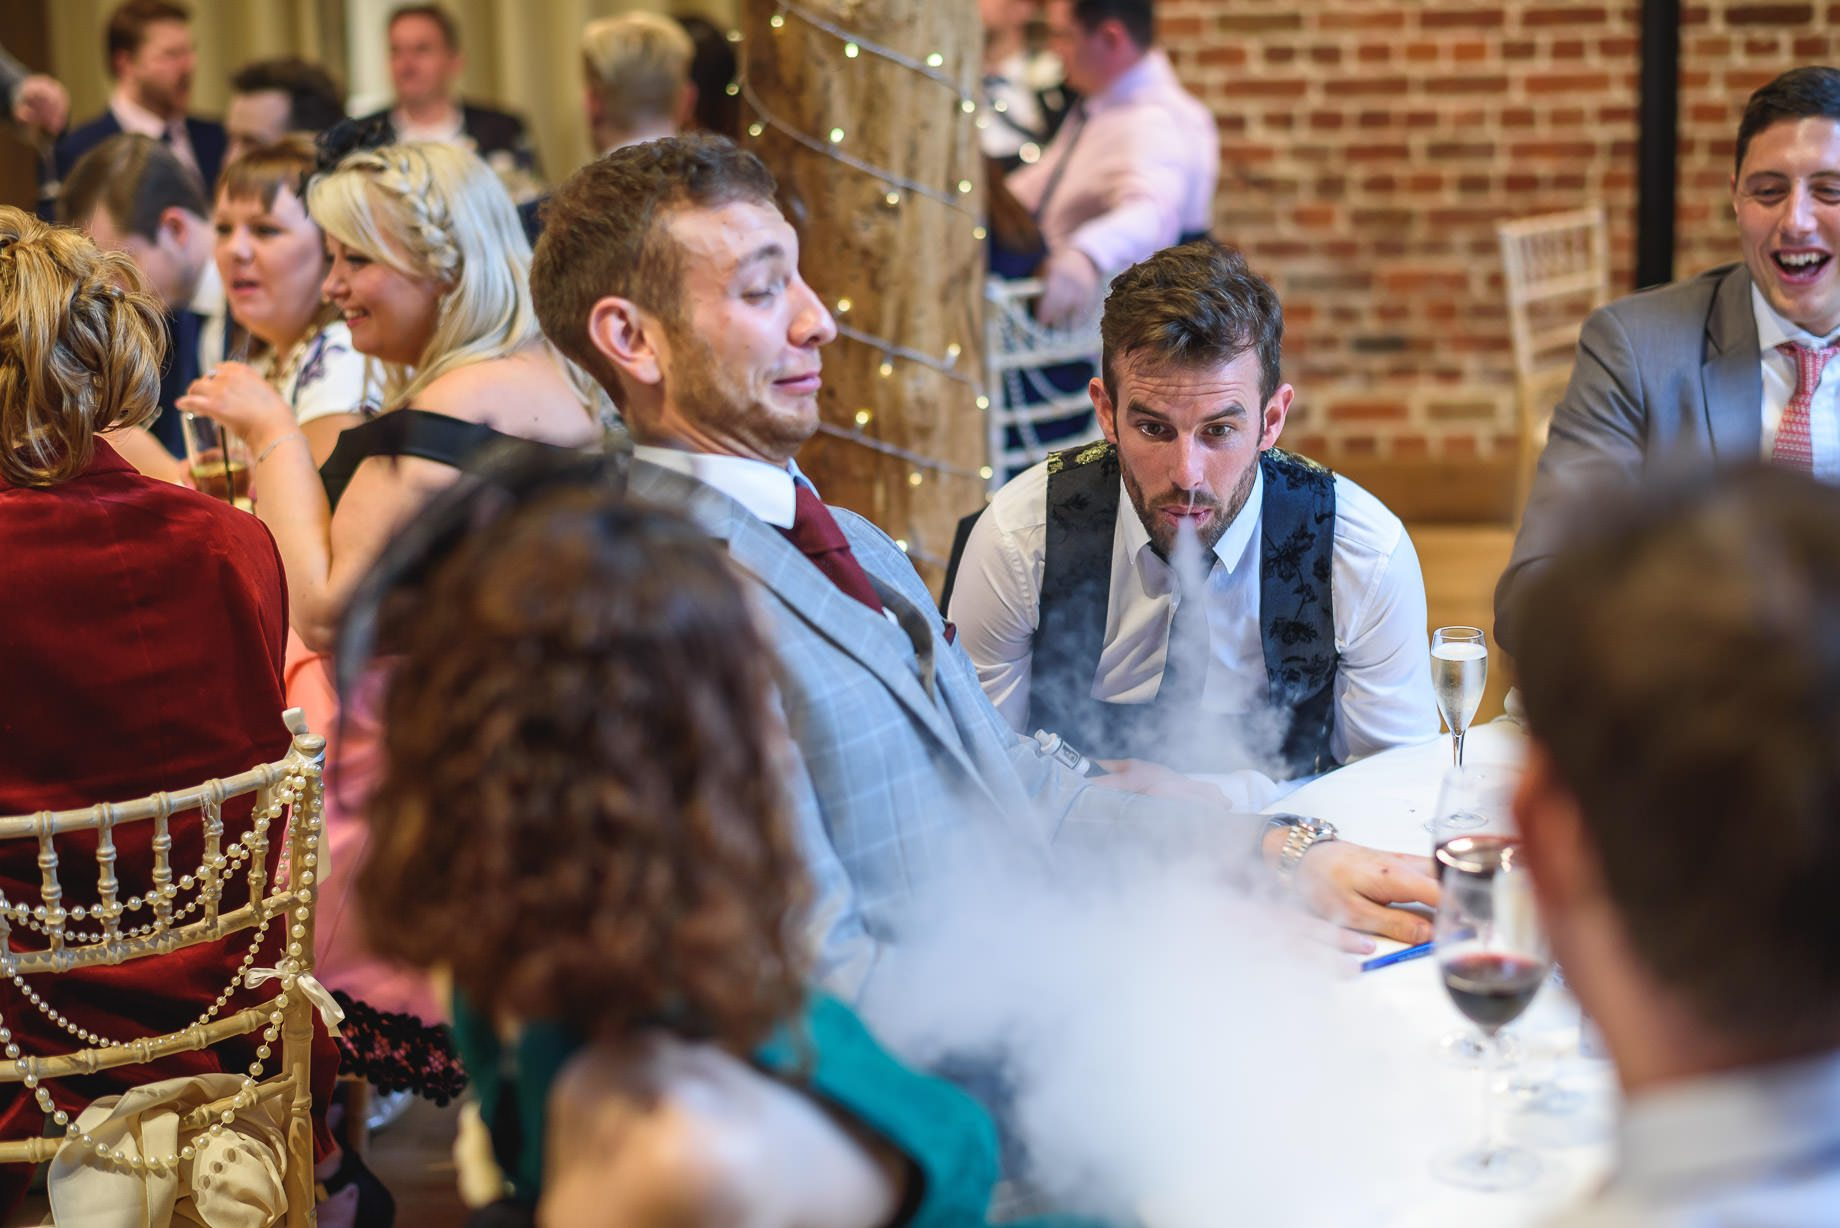 Best wedding photography by Guy Collier - Sheri and Chris (86 of 121)